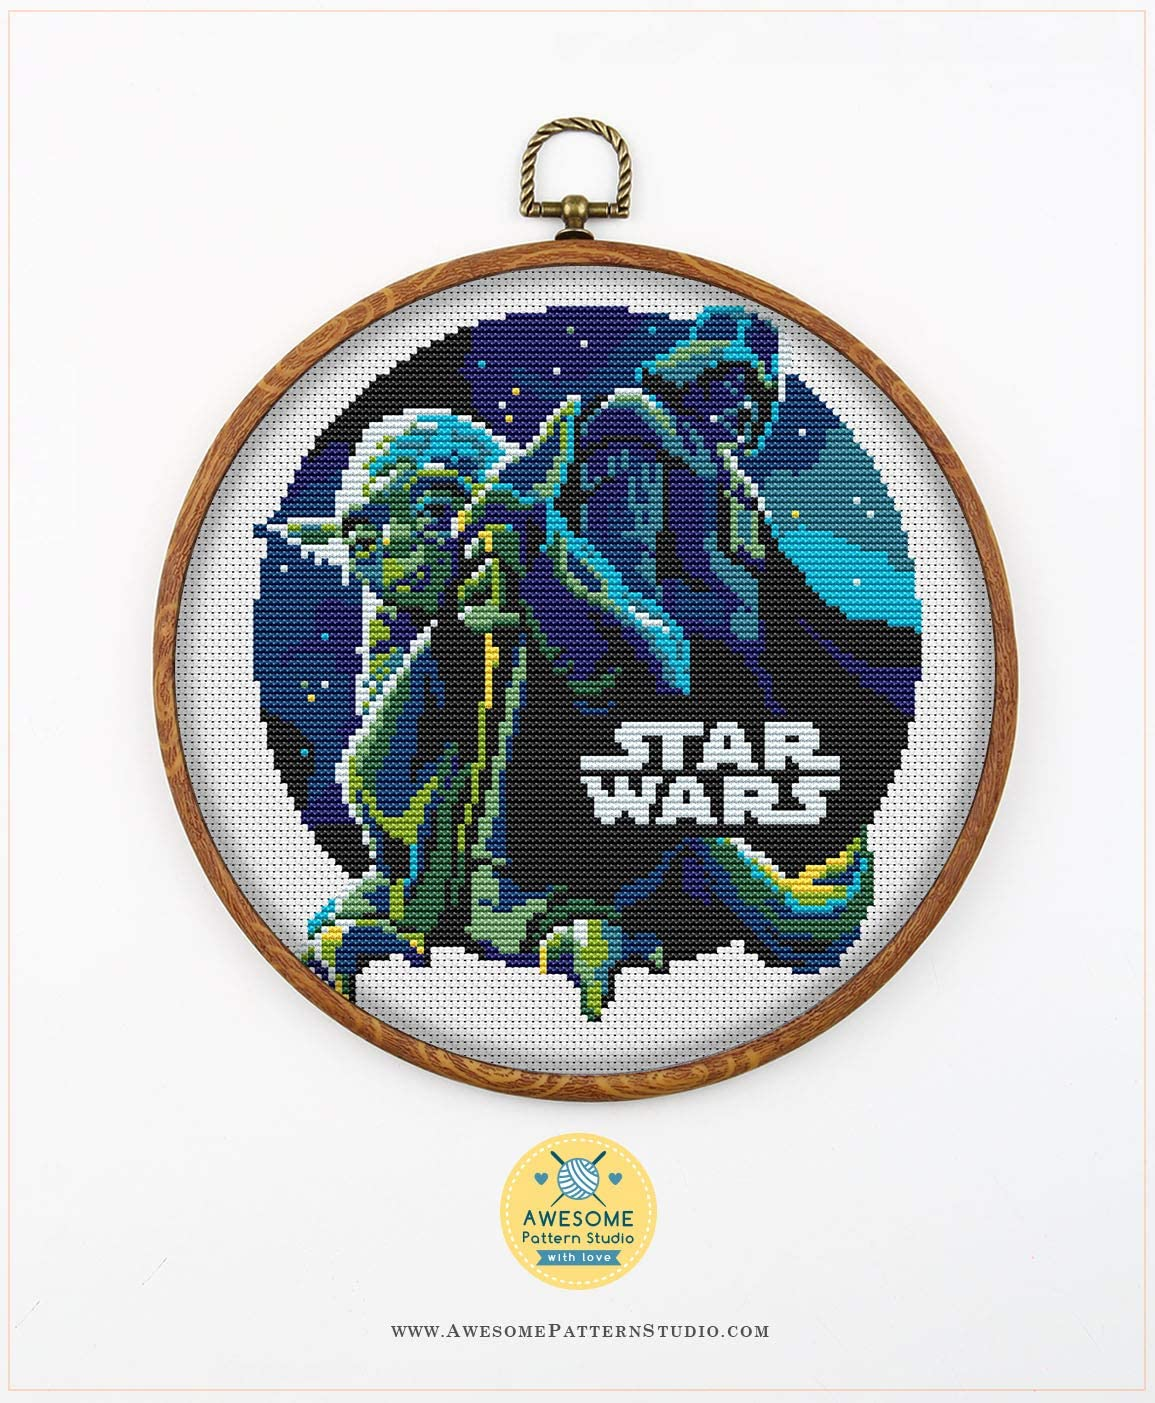 Threads Embroidery Pattern Kit Needles Star Wars K061 Counted Cross Stitch KIT#2 Fabrick and 4 Printed Color Schemes Inside